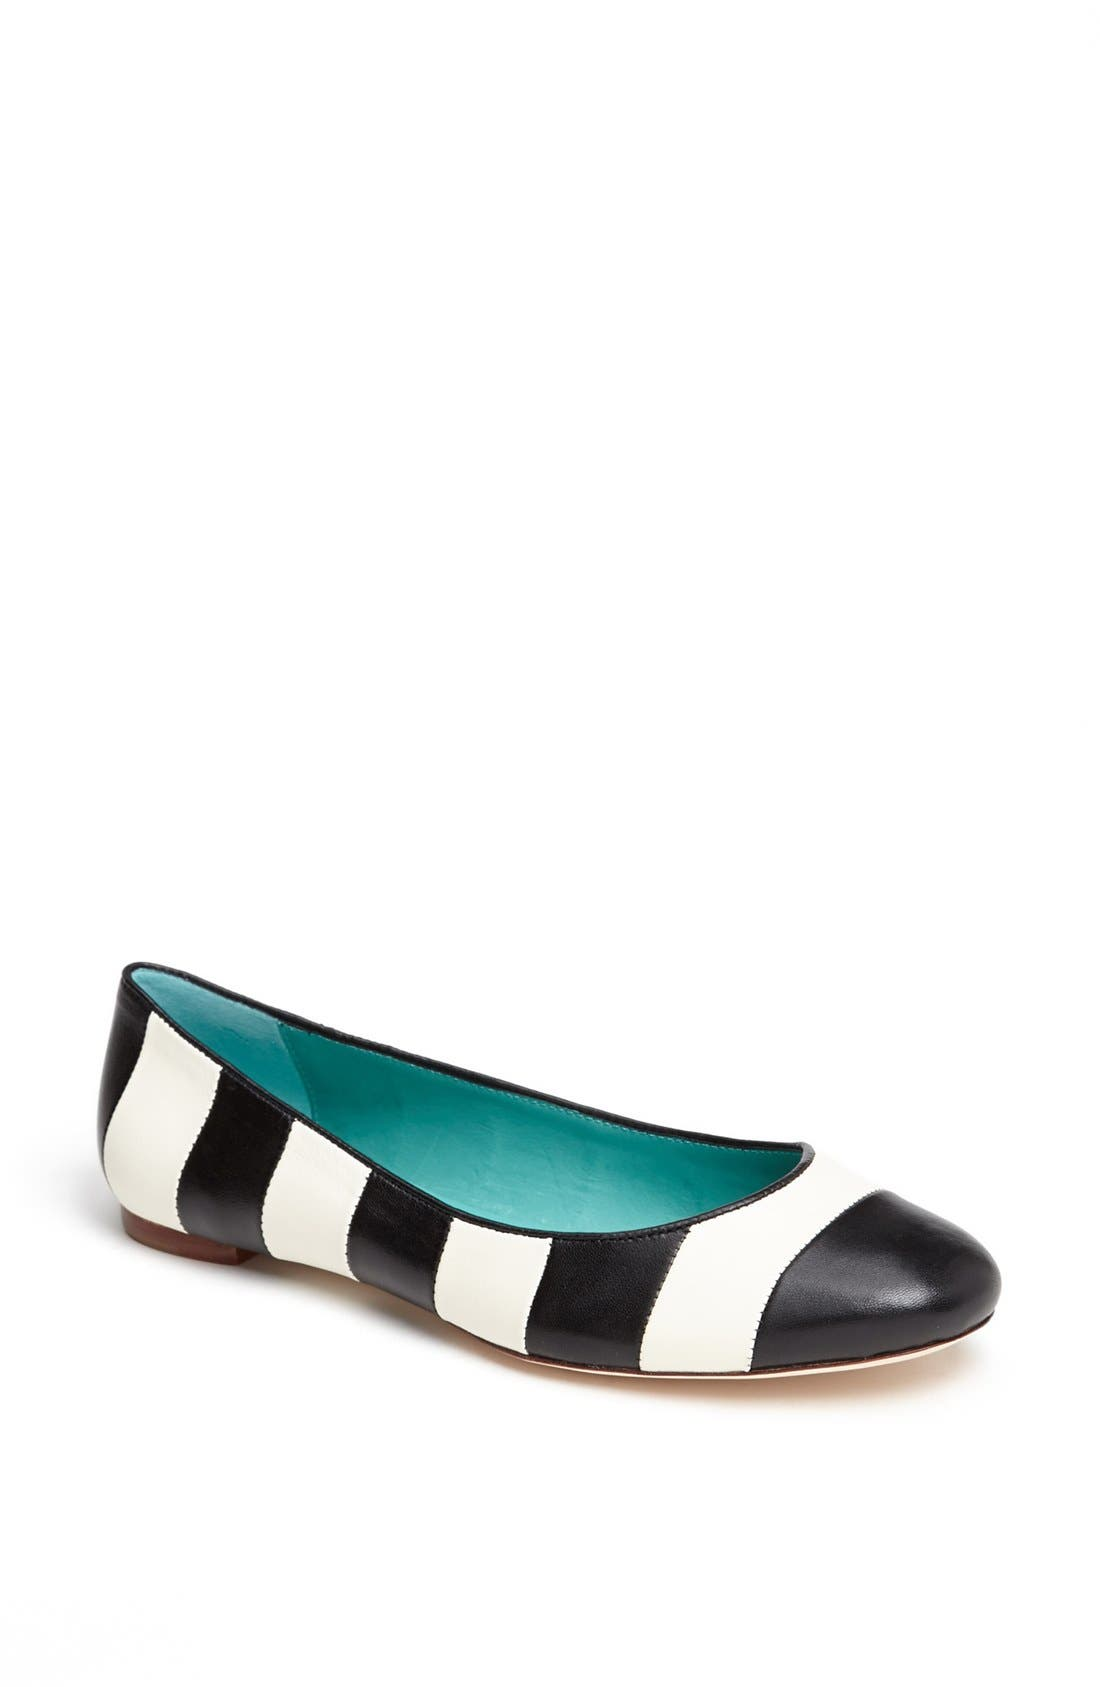 Main Image - kate spade new york 'tanya' flat